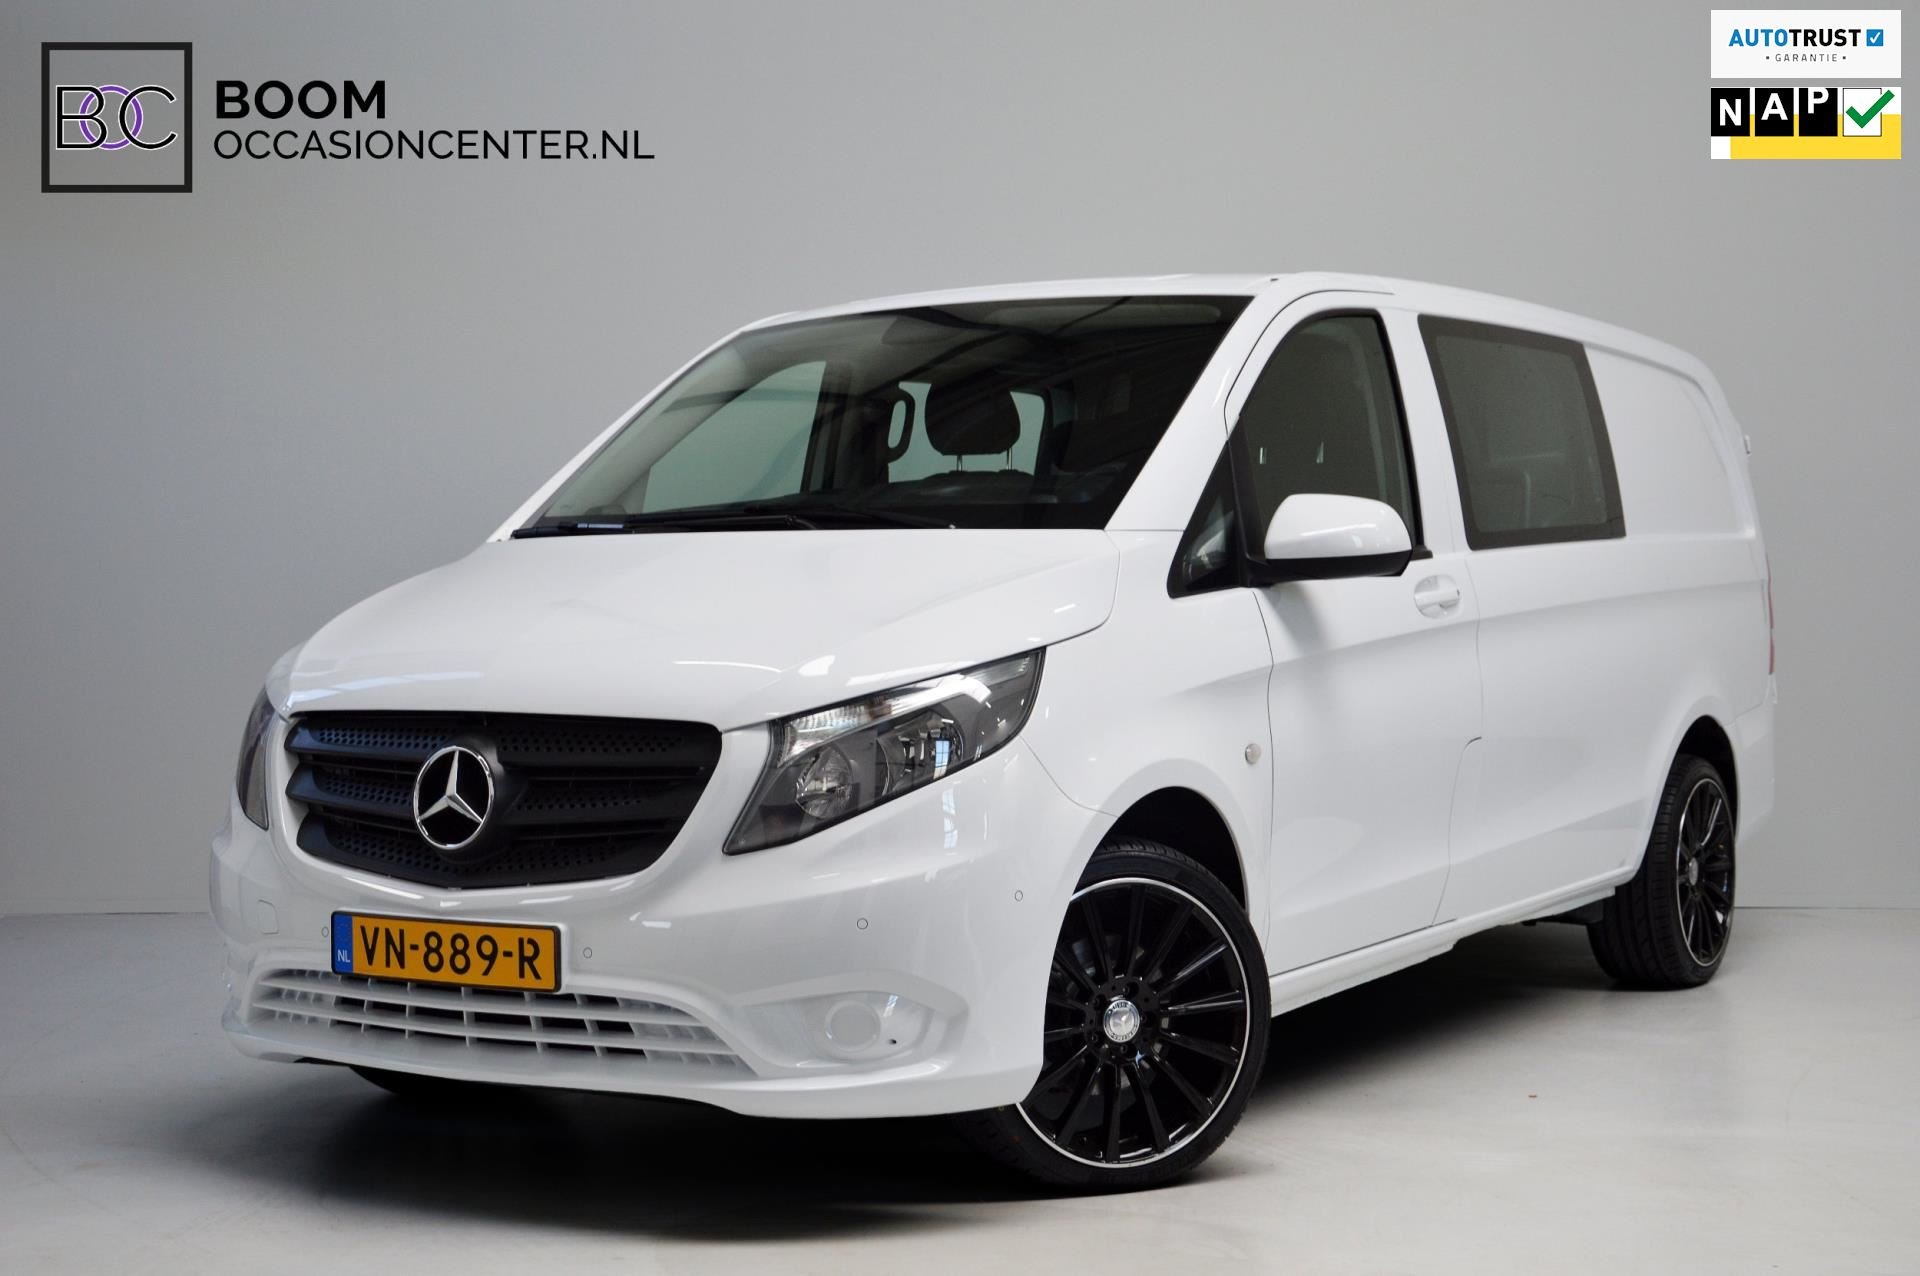 Mercedes-Benz Vito occasion - BoomOccasionCenter.nl